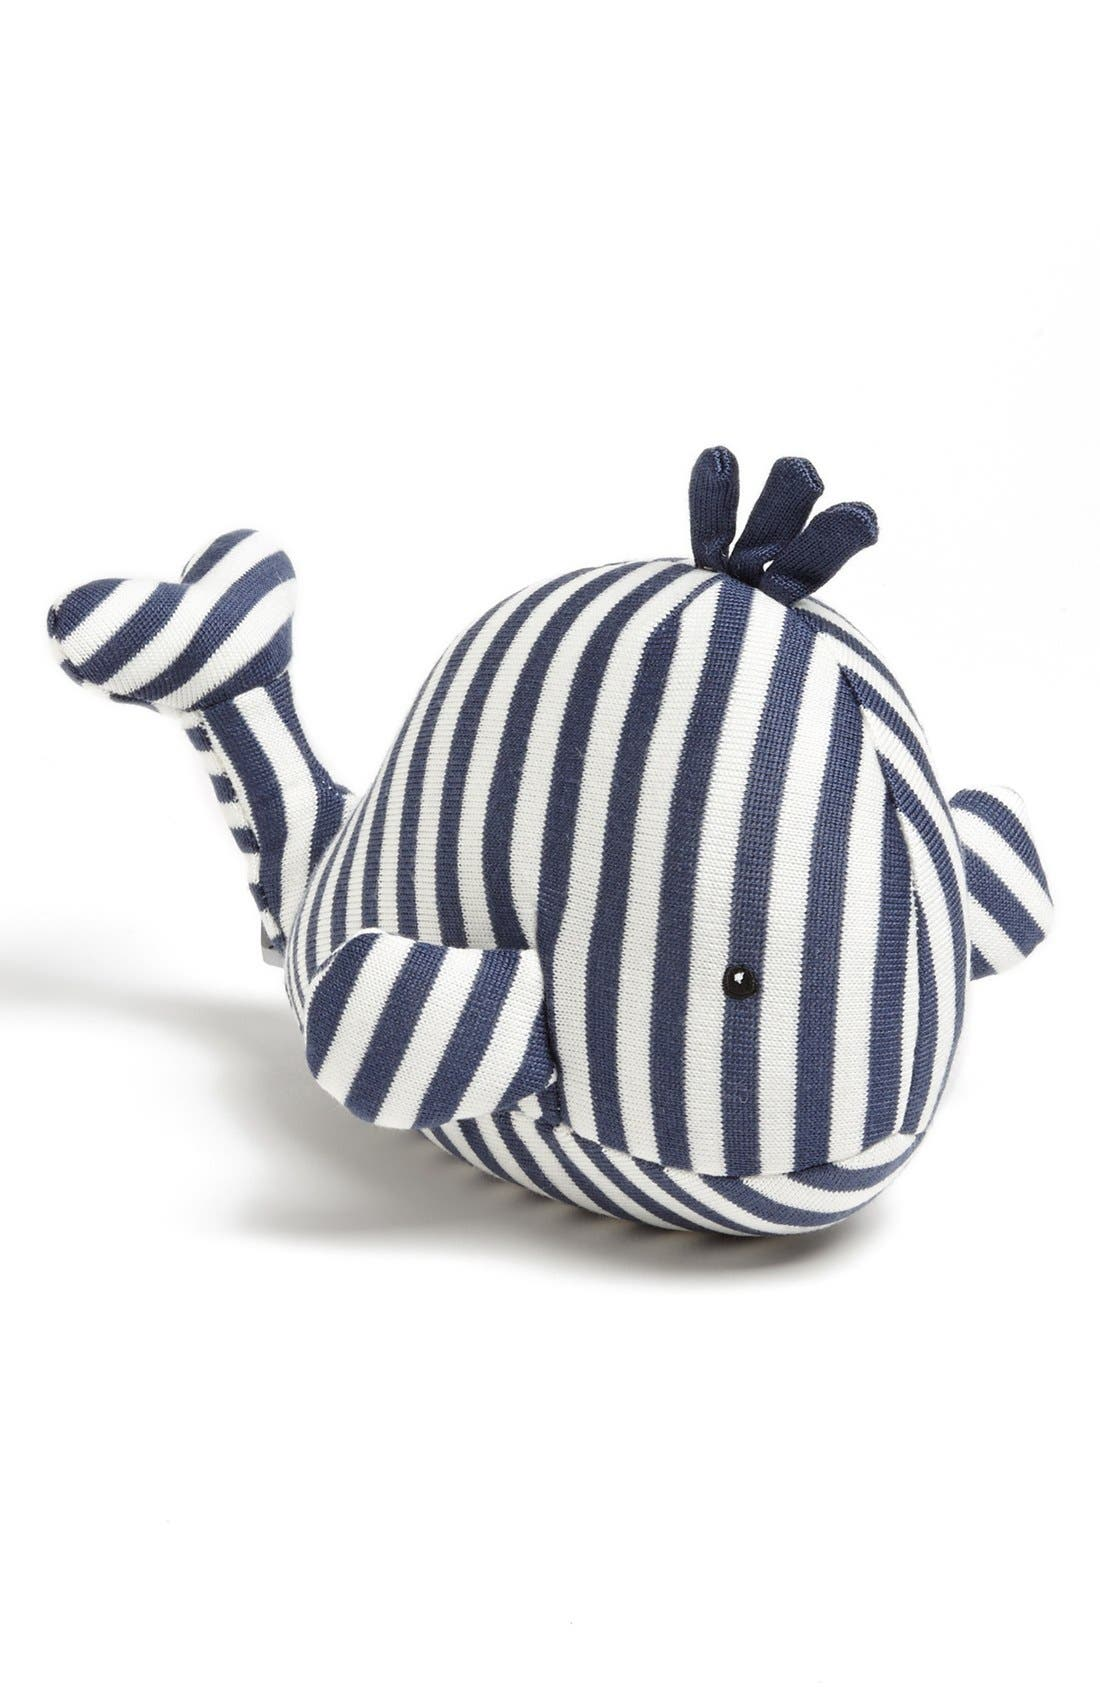 Alternate Image 1 Selected - Jellycat 'Walter Whale' Chime Stuffed Animal